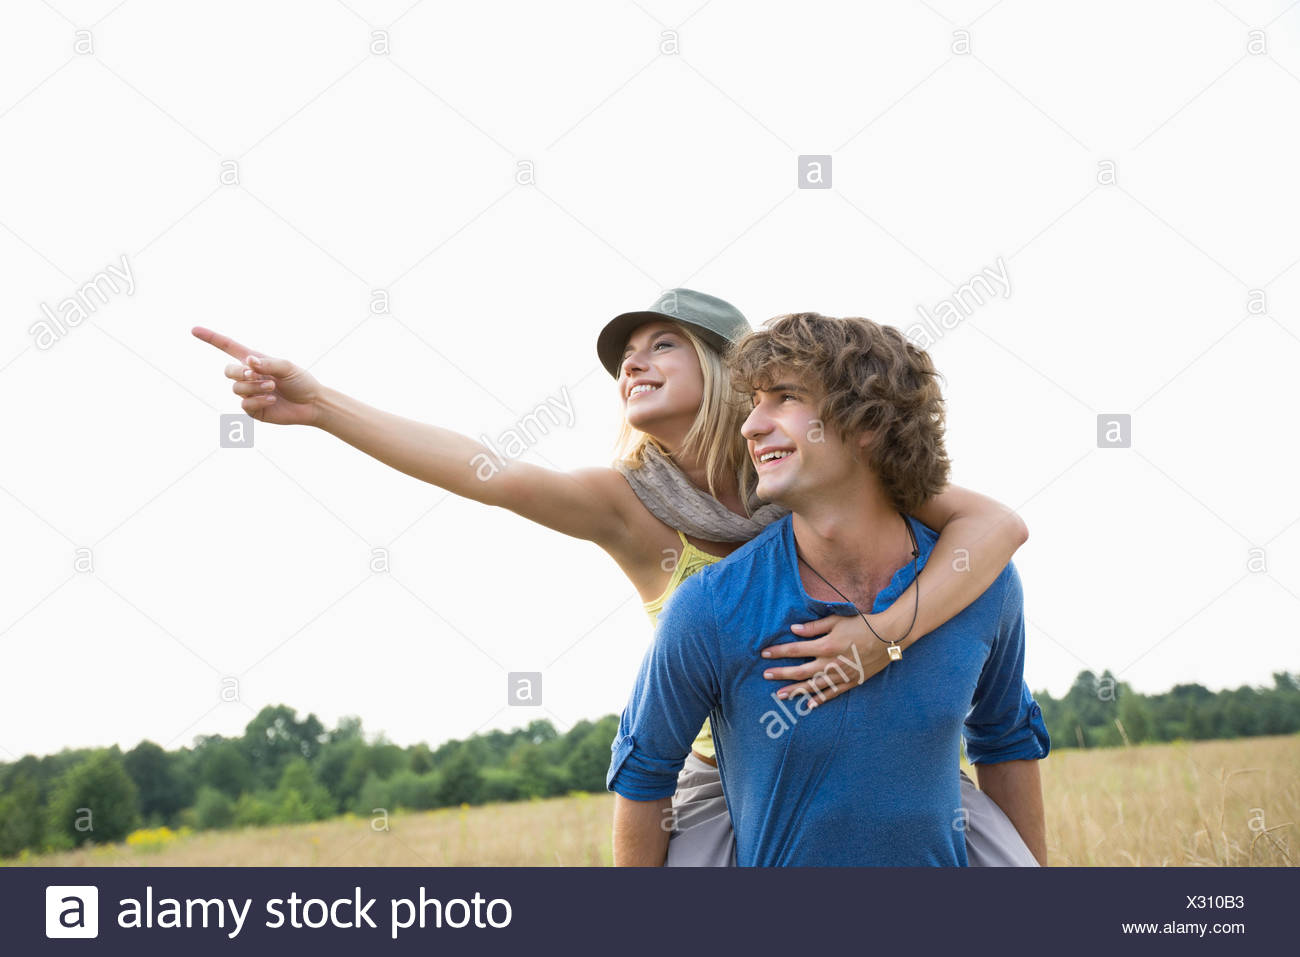 Happy woman showing something while enjoying piggyback ride on man in field - Stock Image